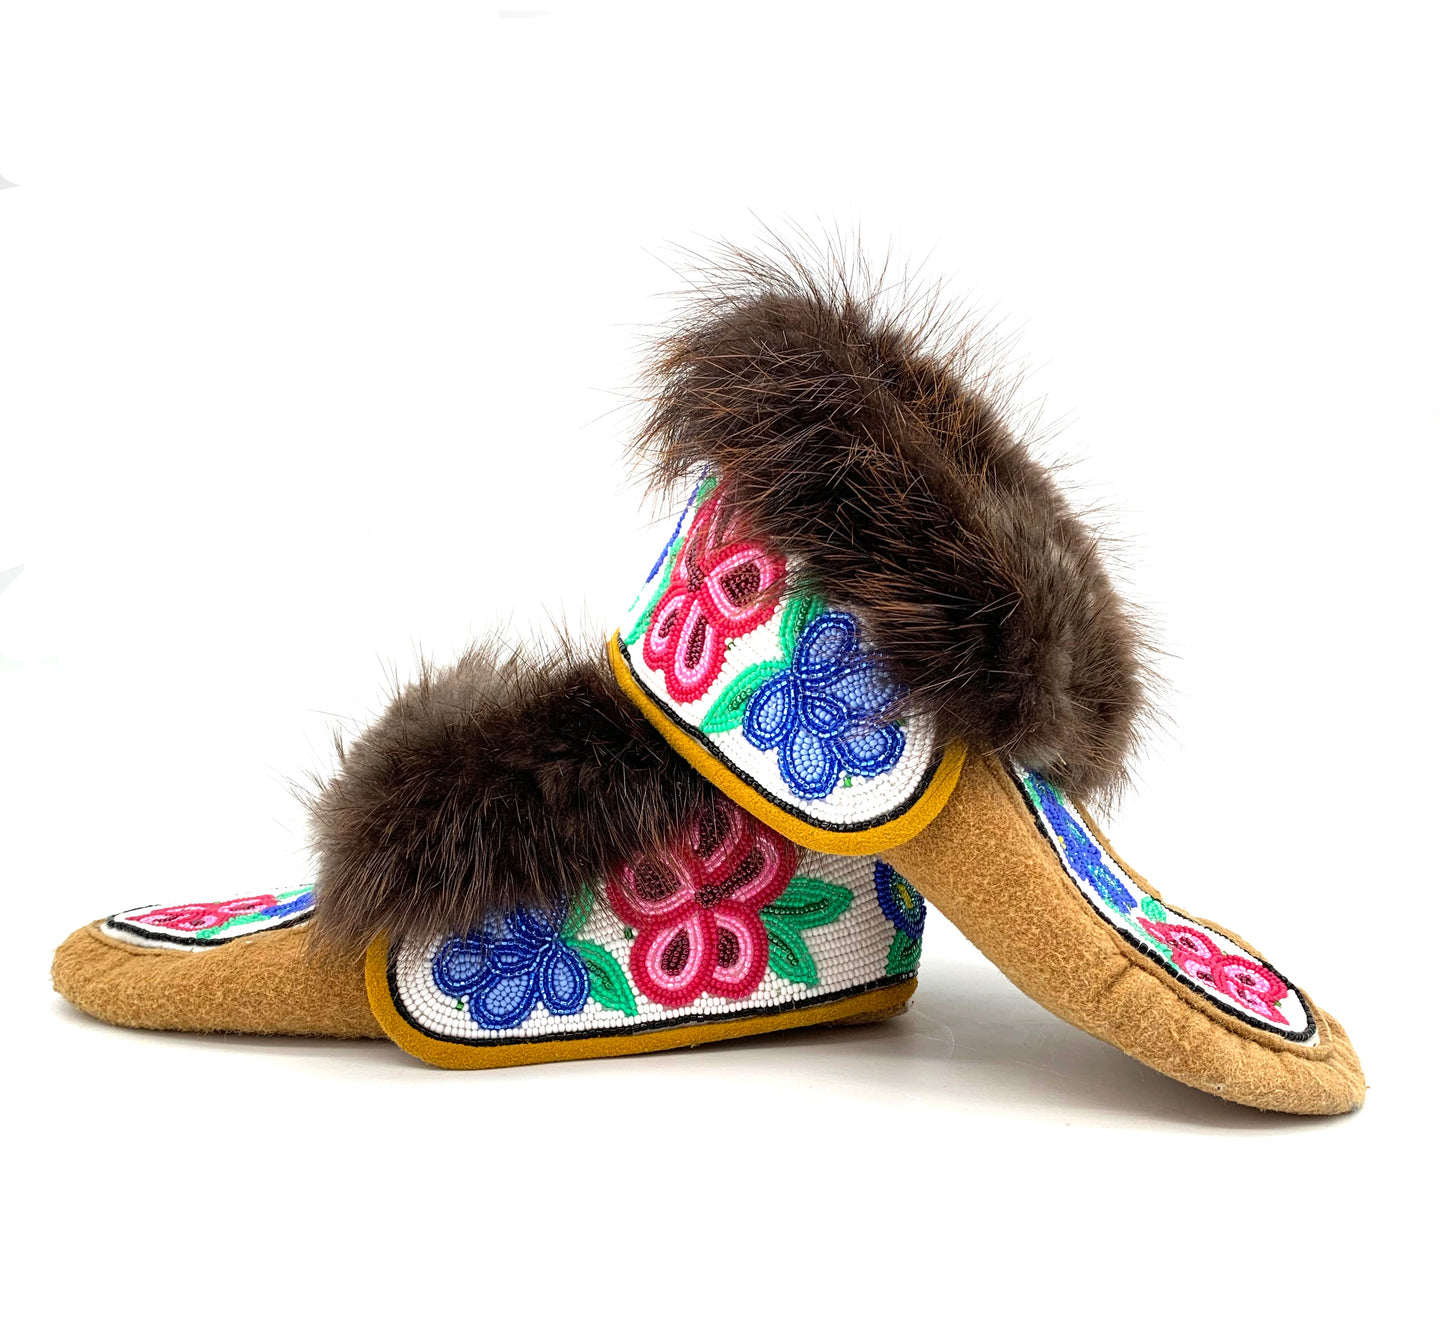 Beaded Crow Boots by Gertie Tom W/8-9 M/6-7